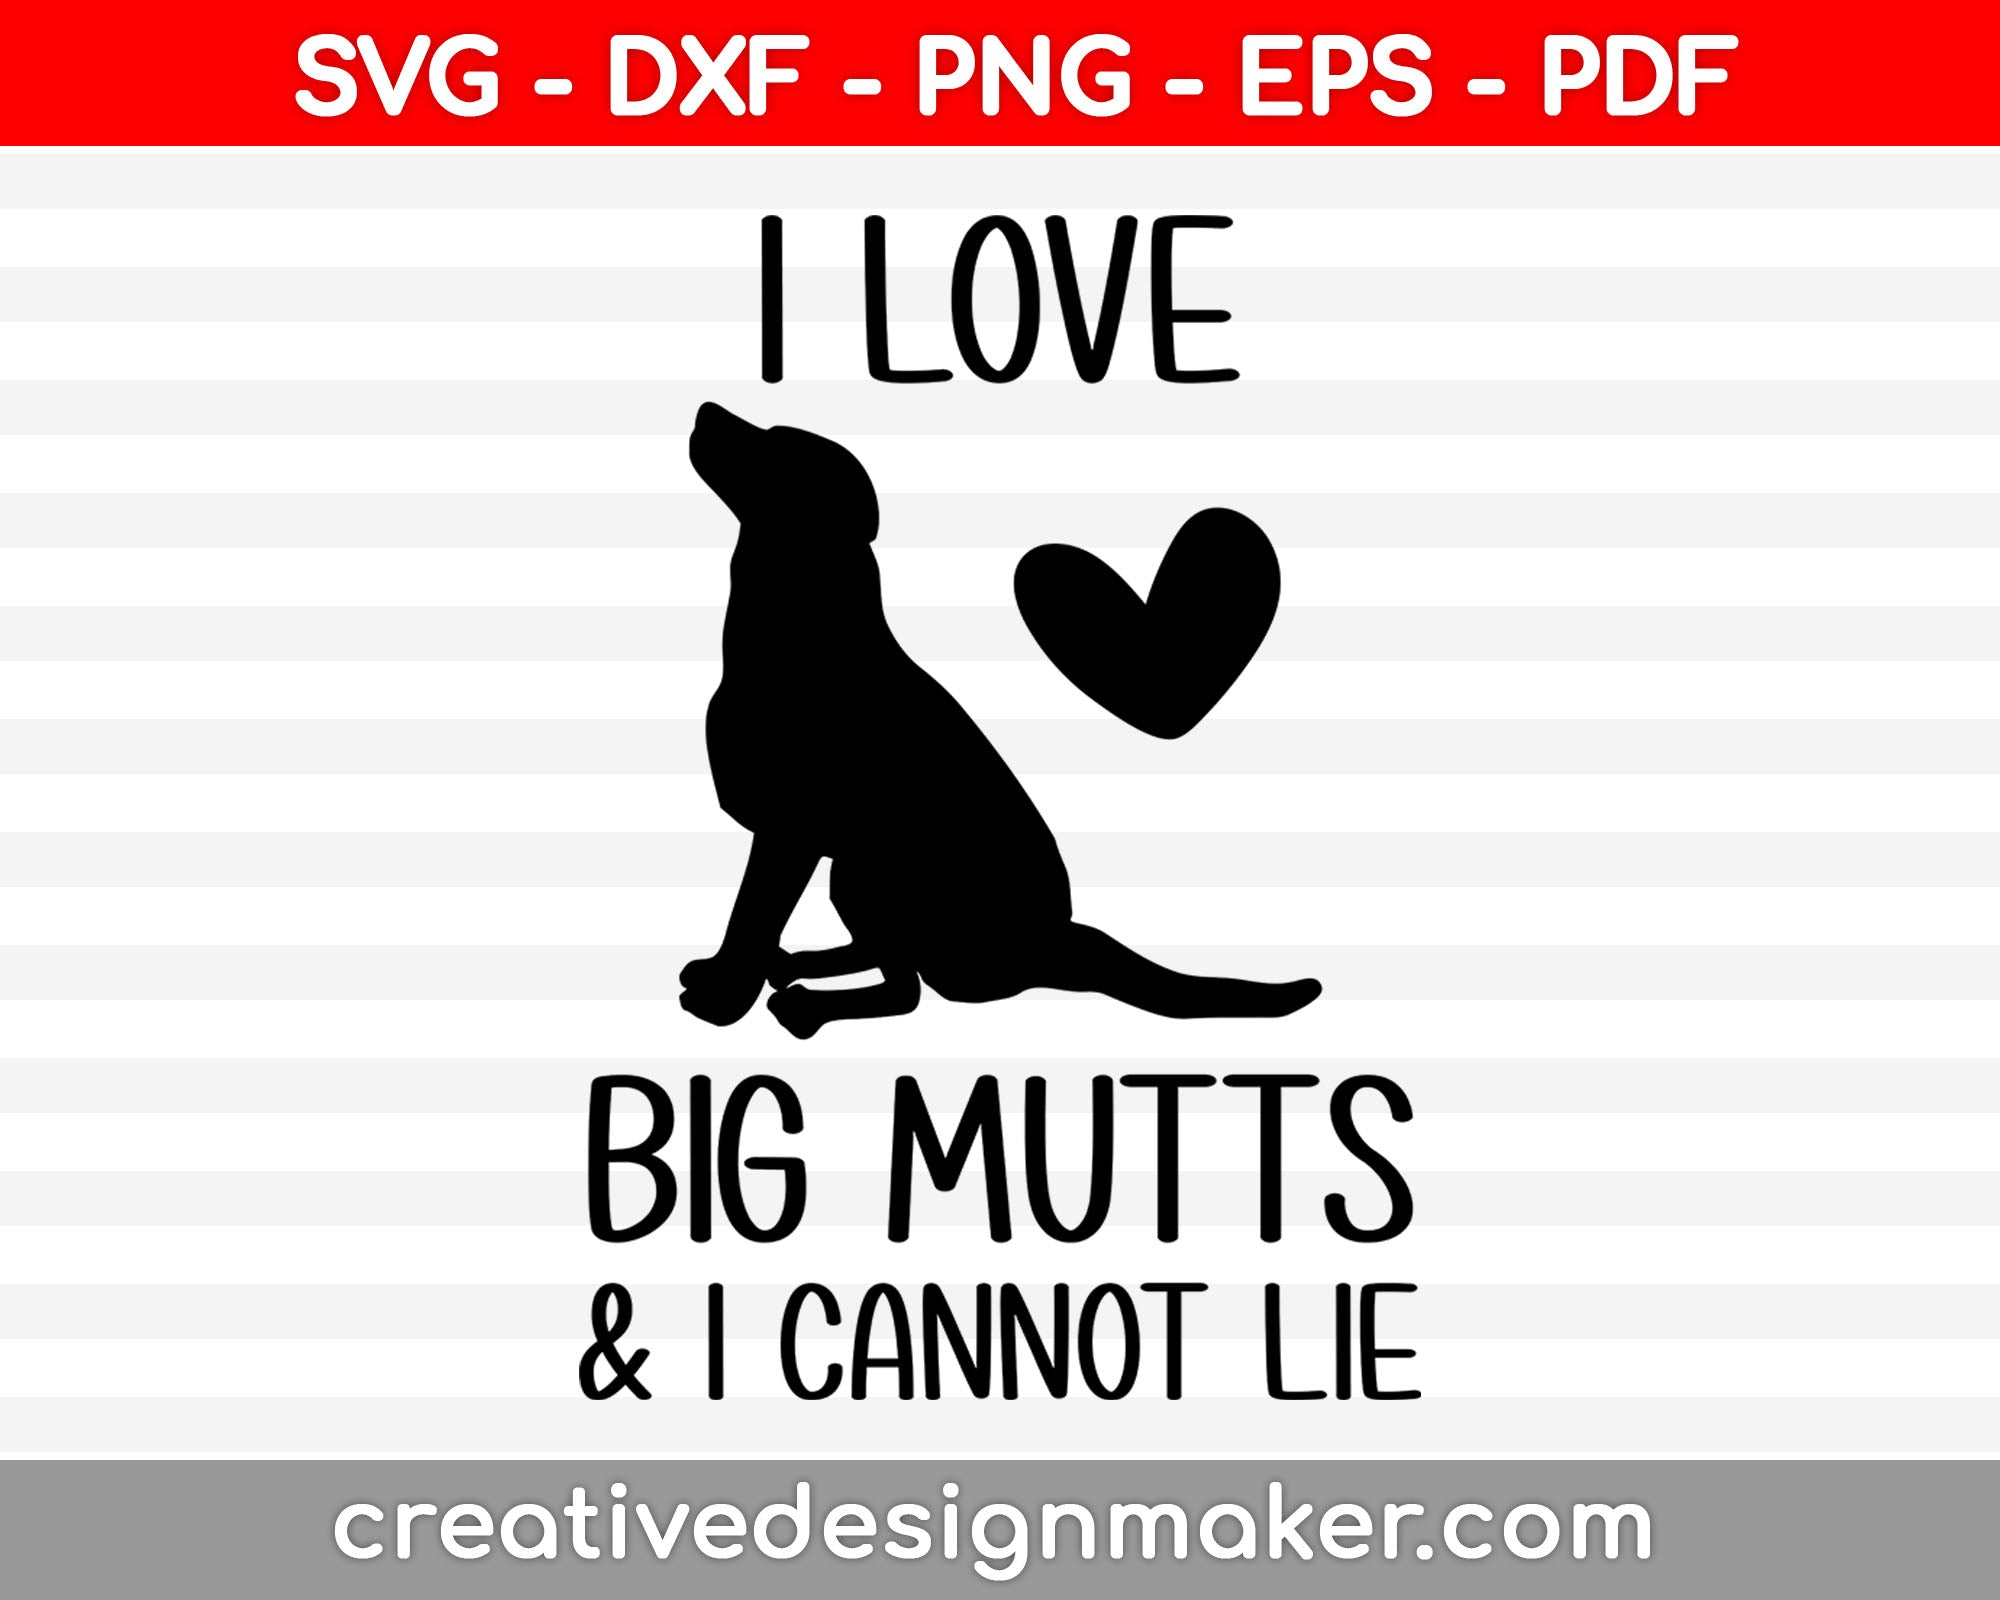 I Love Big Mutts & I Can't Lie Svg Dxf Png Eps Pdf Printable Files